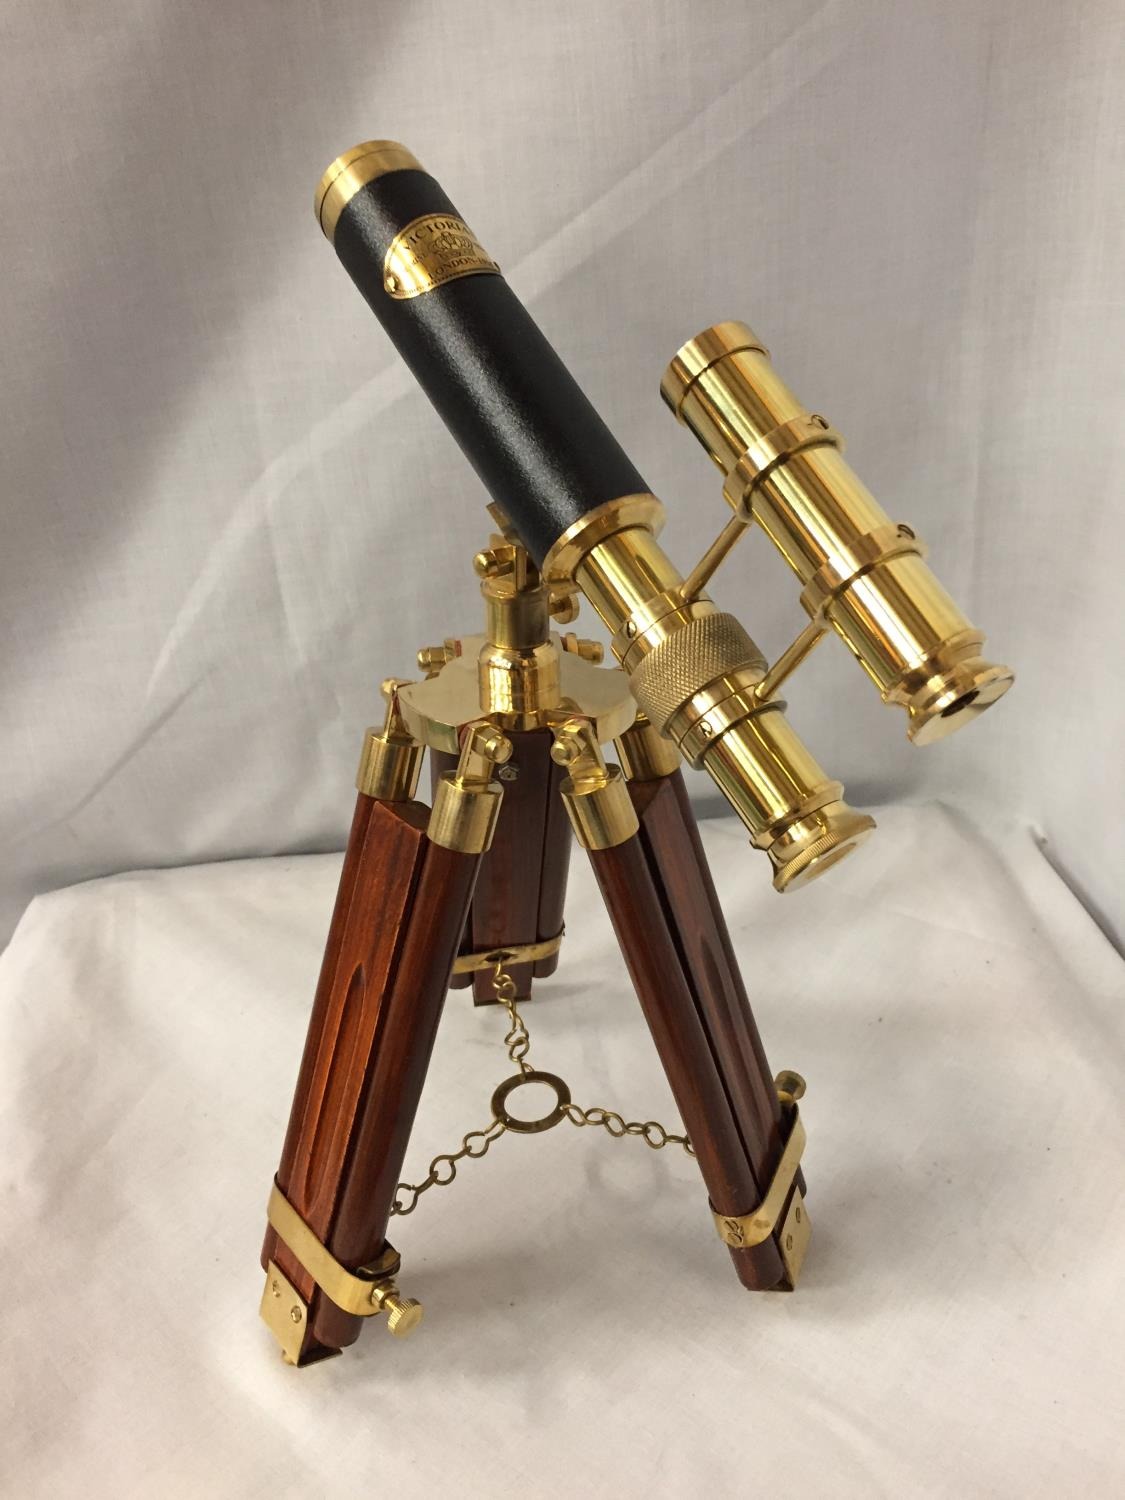 A BRASS AND LEATHER TELESCOPE ON A WOODEN TRIPOD STAND, 34CM HIGH